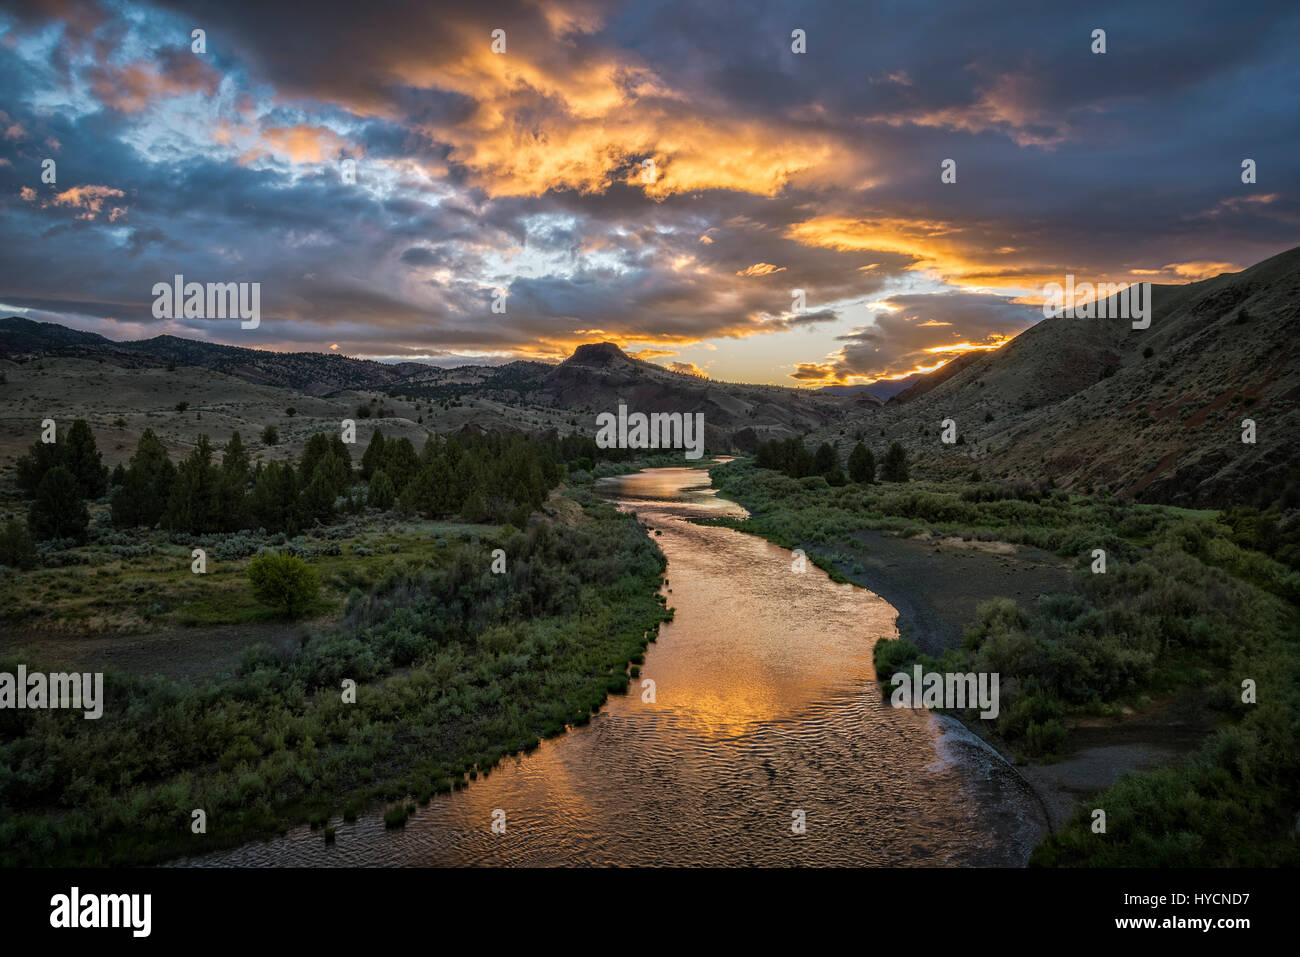 The Wild and Scenic John Day River at Priest Hole access in eastern Oregon. - Stock Image